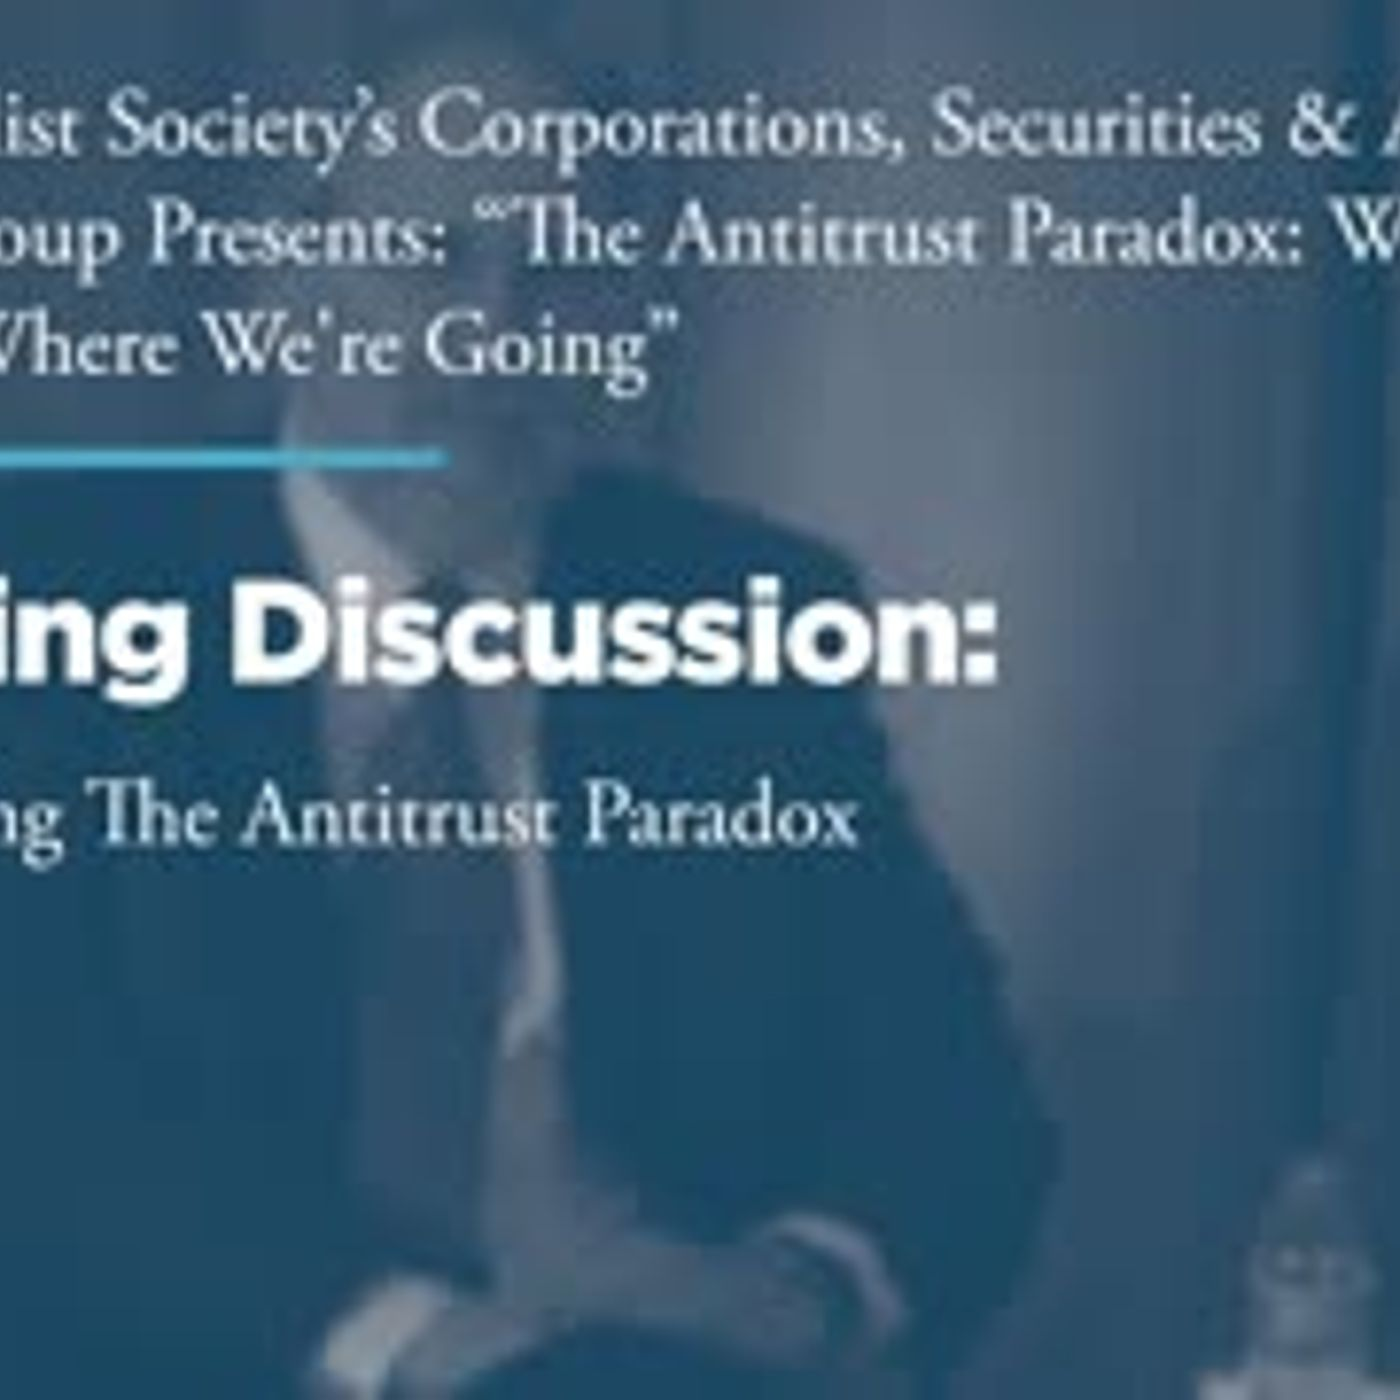 Opening Discussion: Republishing The Antitrust Paradox